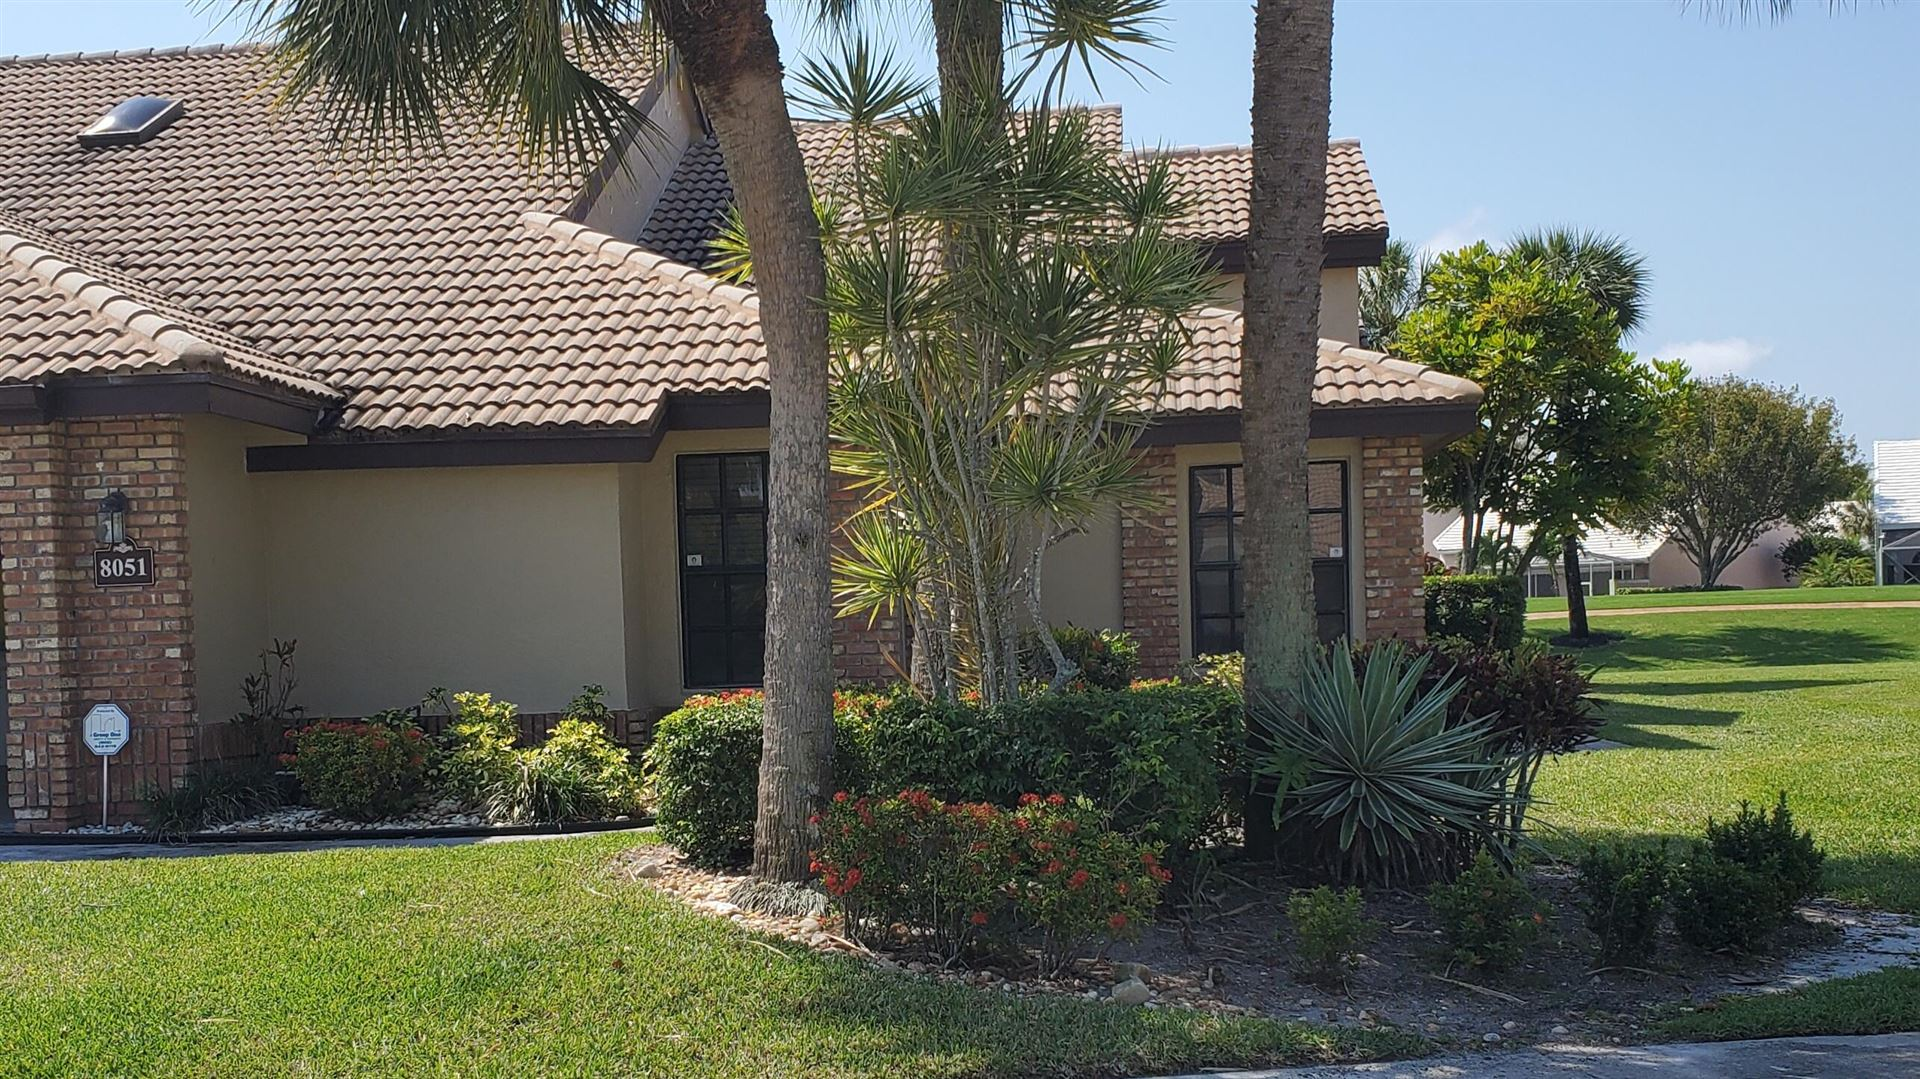 Photo of 8051 Cassia Drive, Boynton Beach, FL 33472 (MLS # RX-10708840)